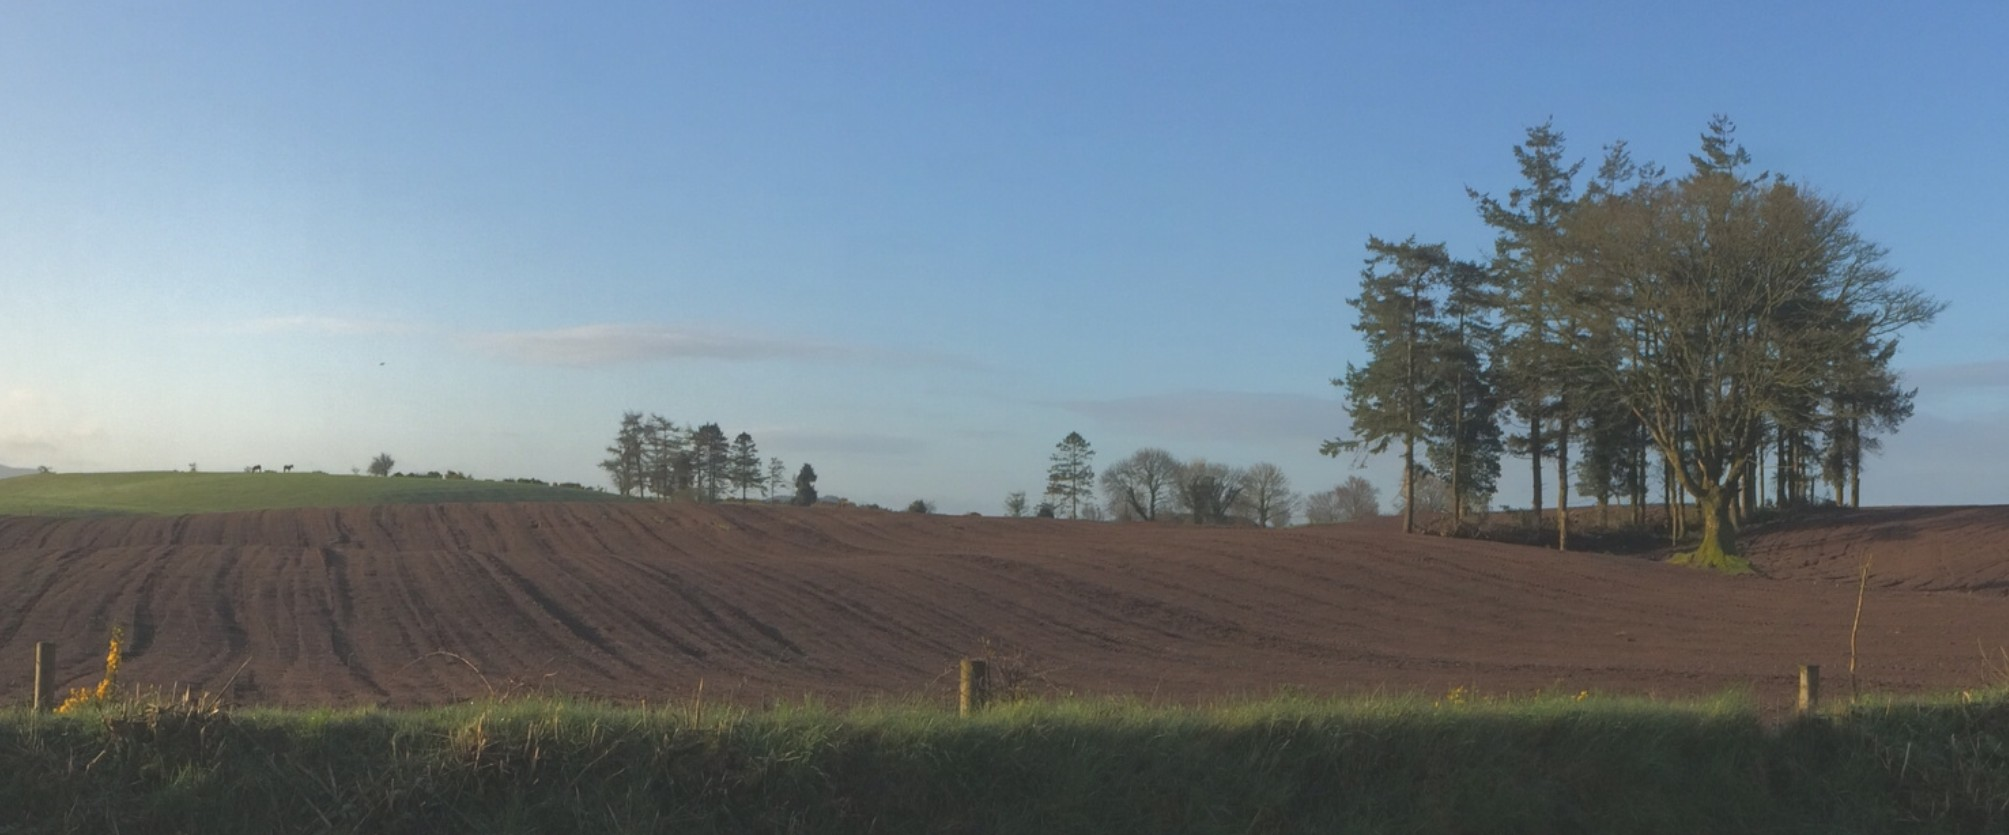 Irish Field Ploughed and Waiting for Crop